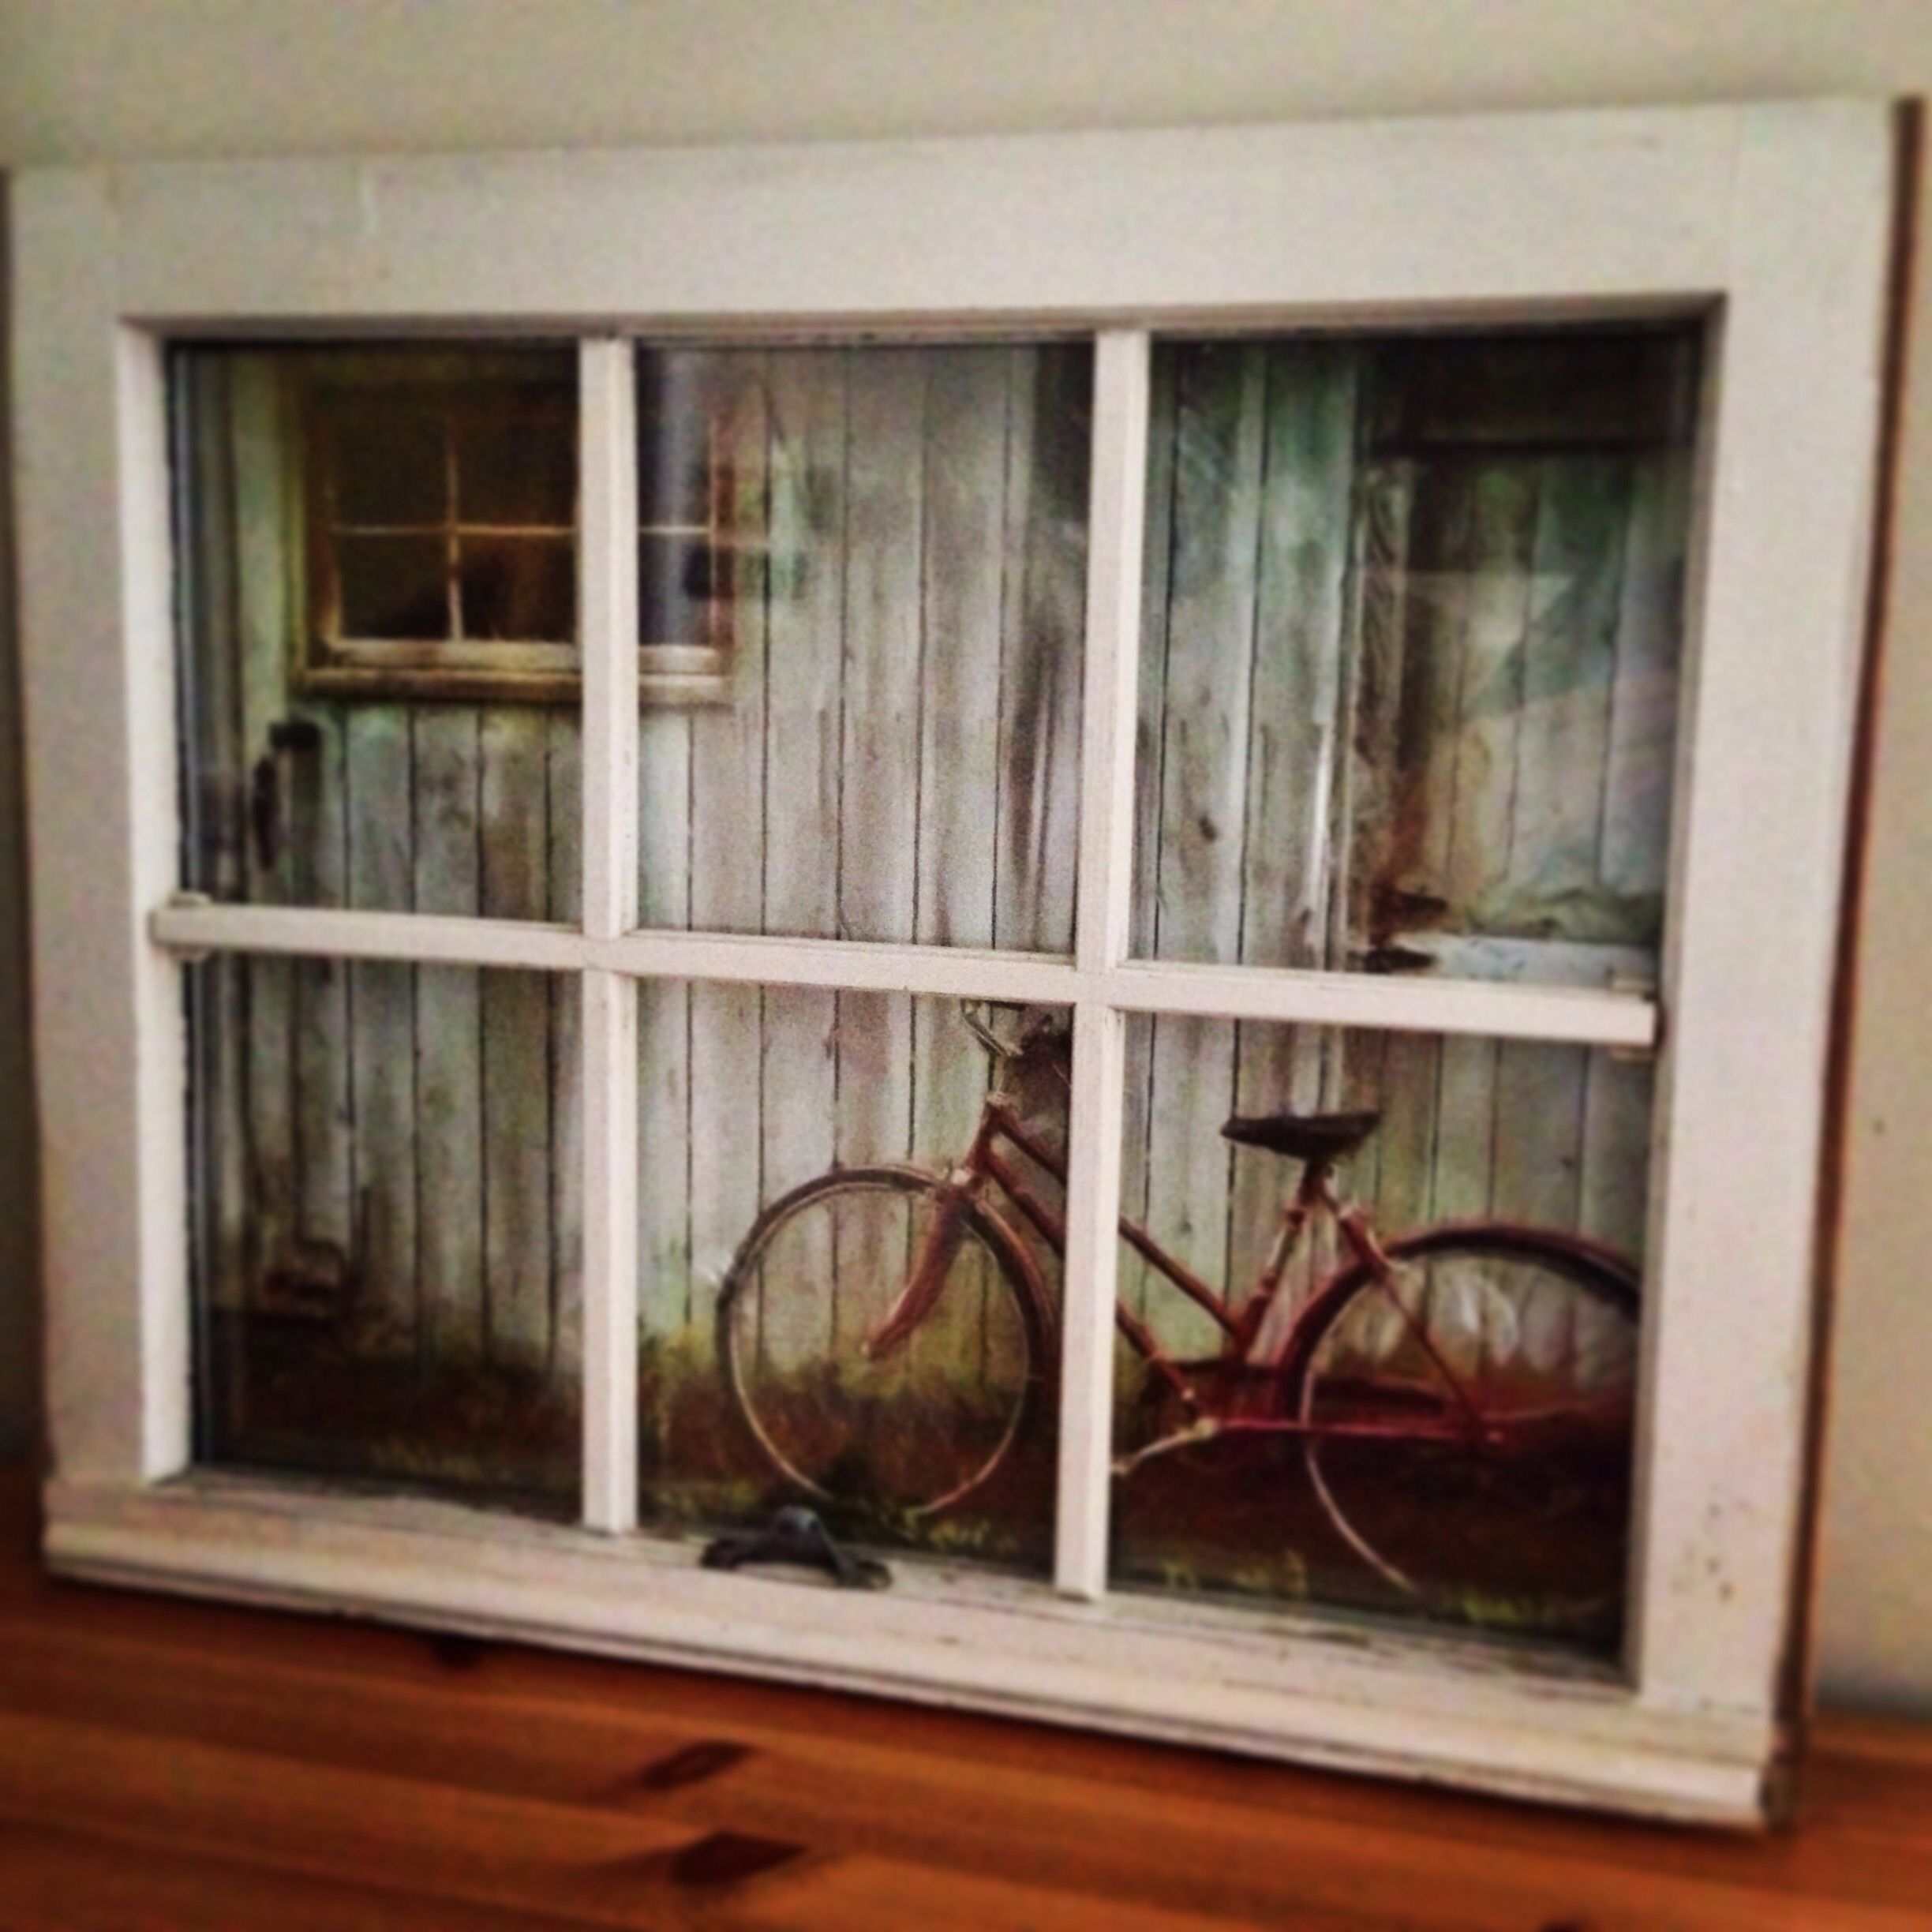 Old wooden window used as picture frame